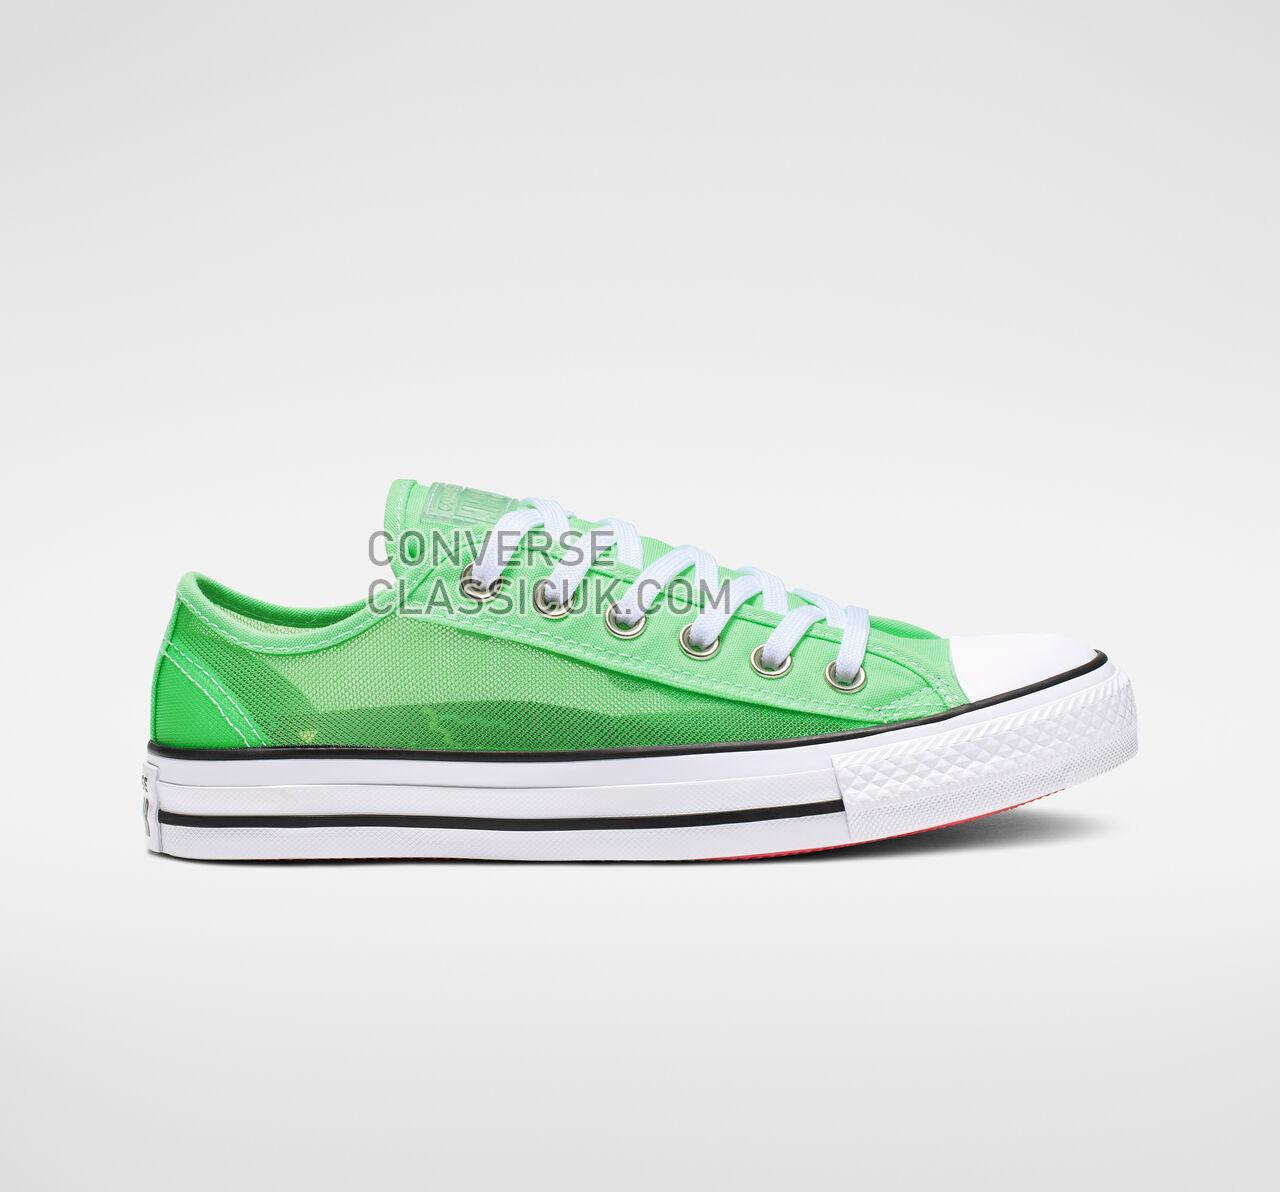 Converse Chuck Taylor All Star See Thru Low Top Womens 564628C Illusion Green/White/Black Shoes